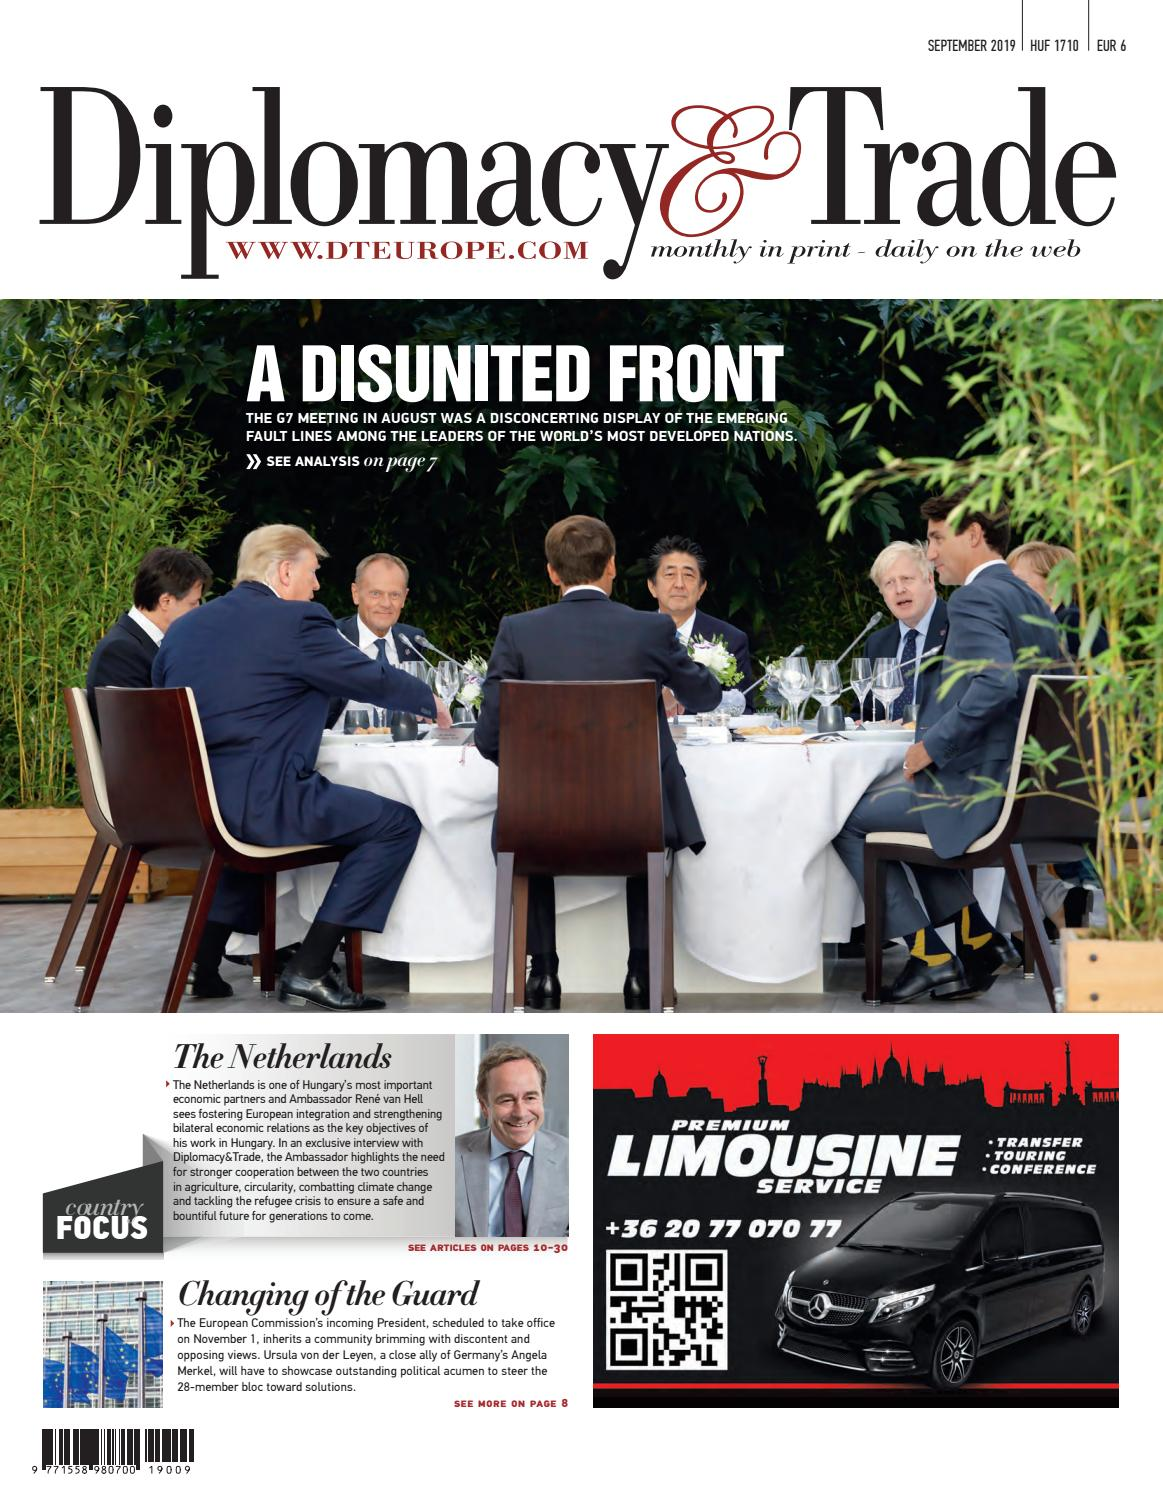 Diplomacy & Trade 2019 September by Diplomacy&Trade - issuu